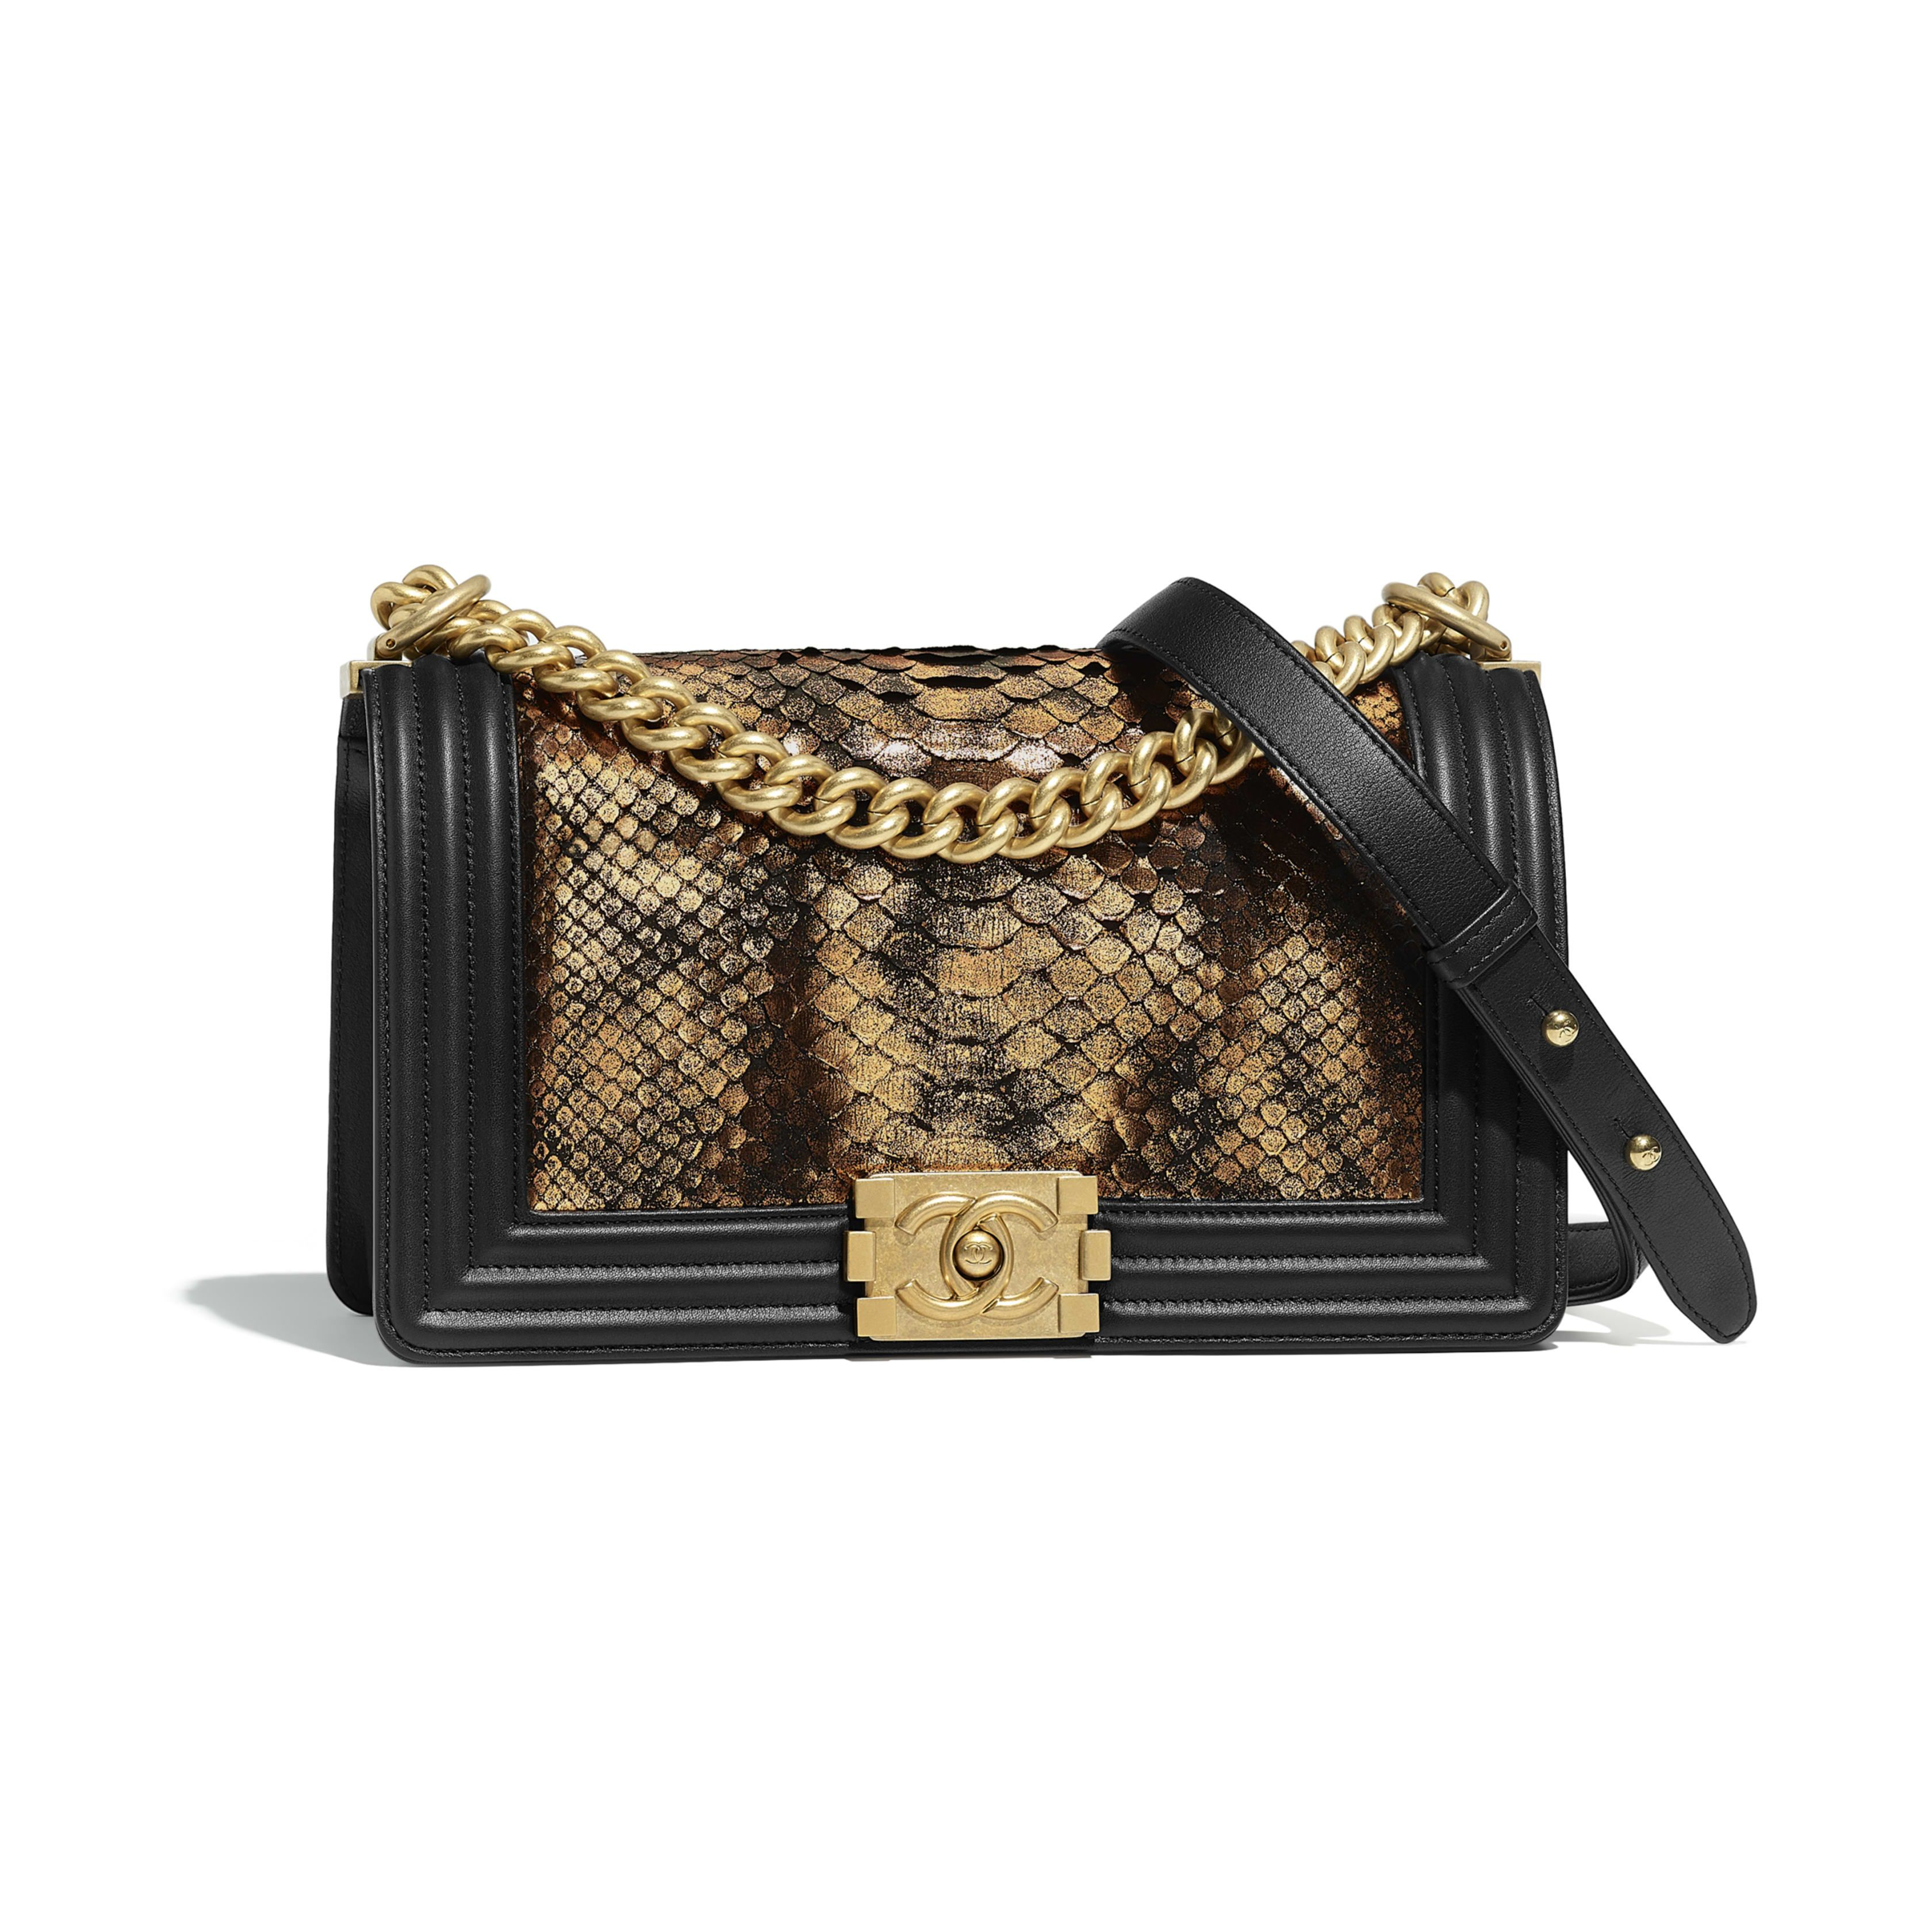 c369a231d3f2 BOY CHANEL Handbag Python, Calfskin & Gold-Tone Metal Bronze & Black - view  1 - see full sized version